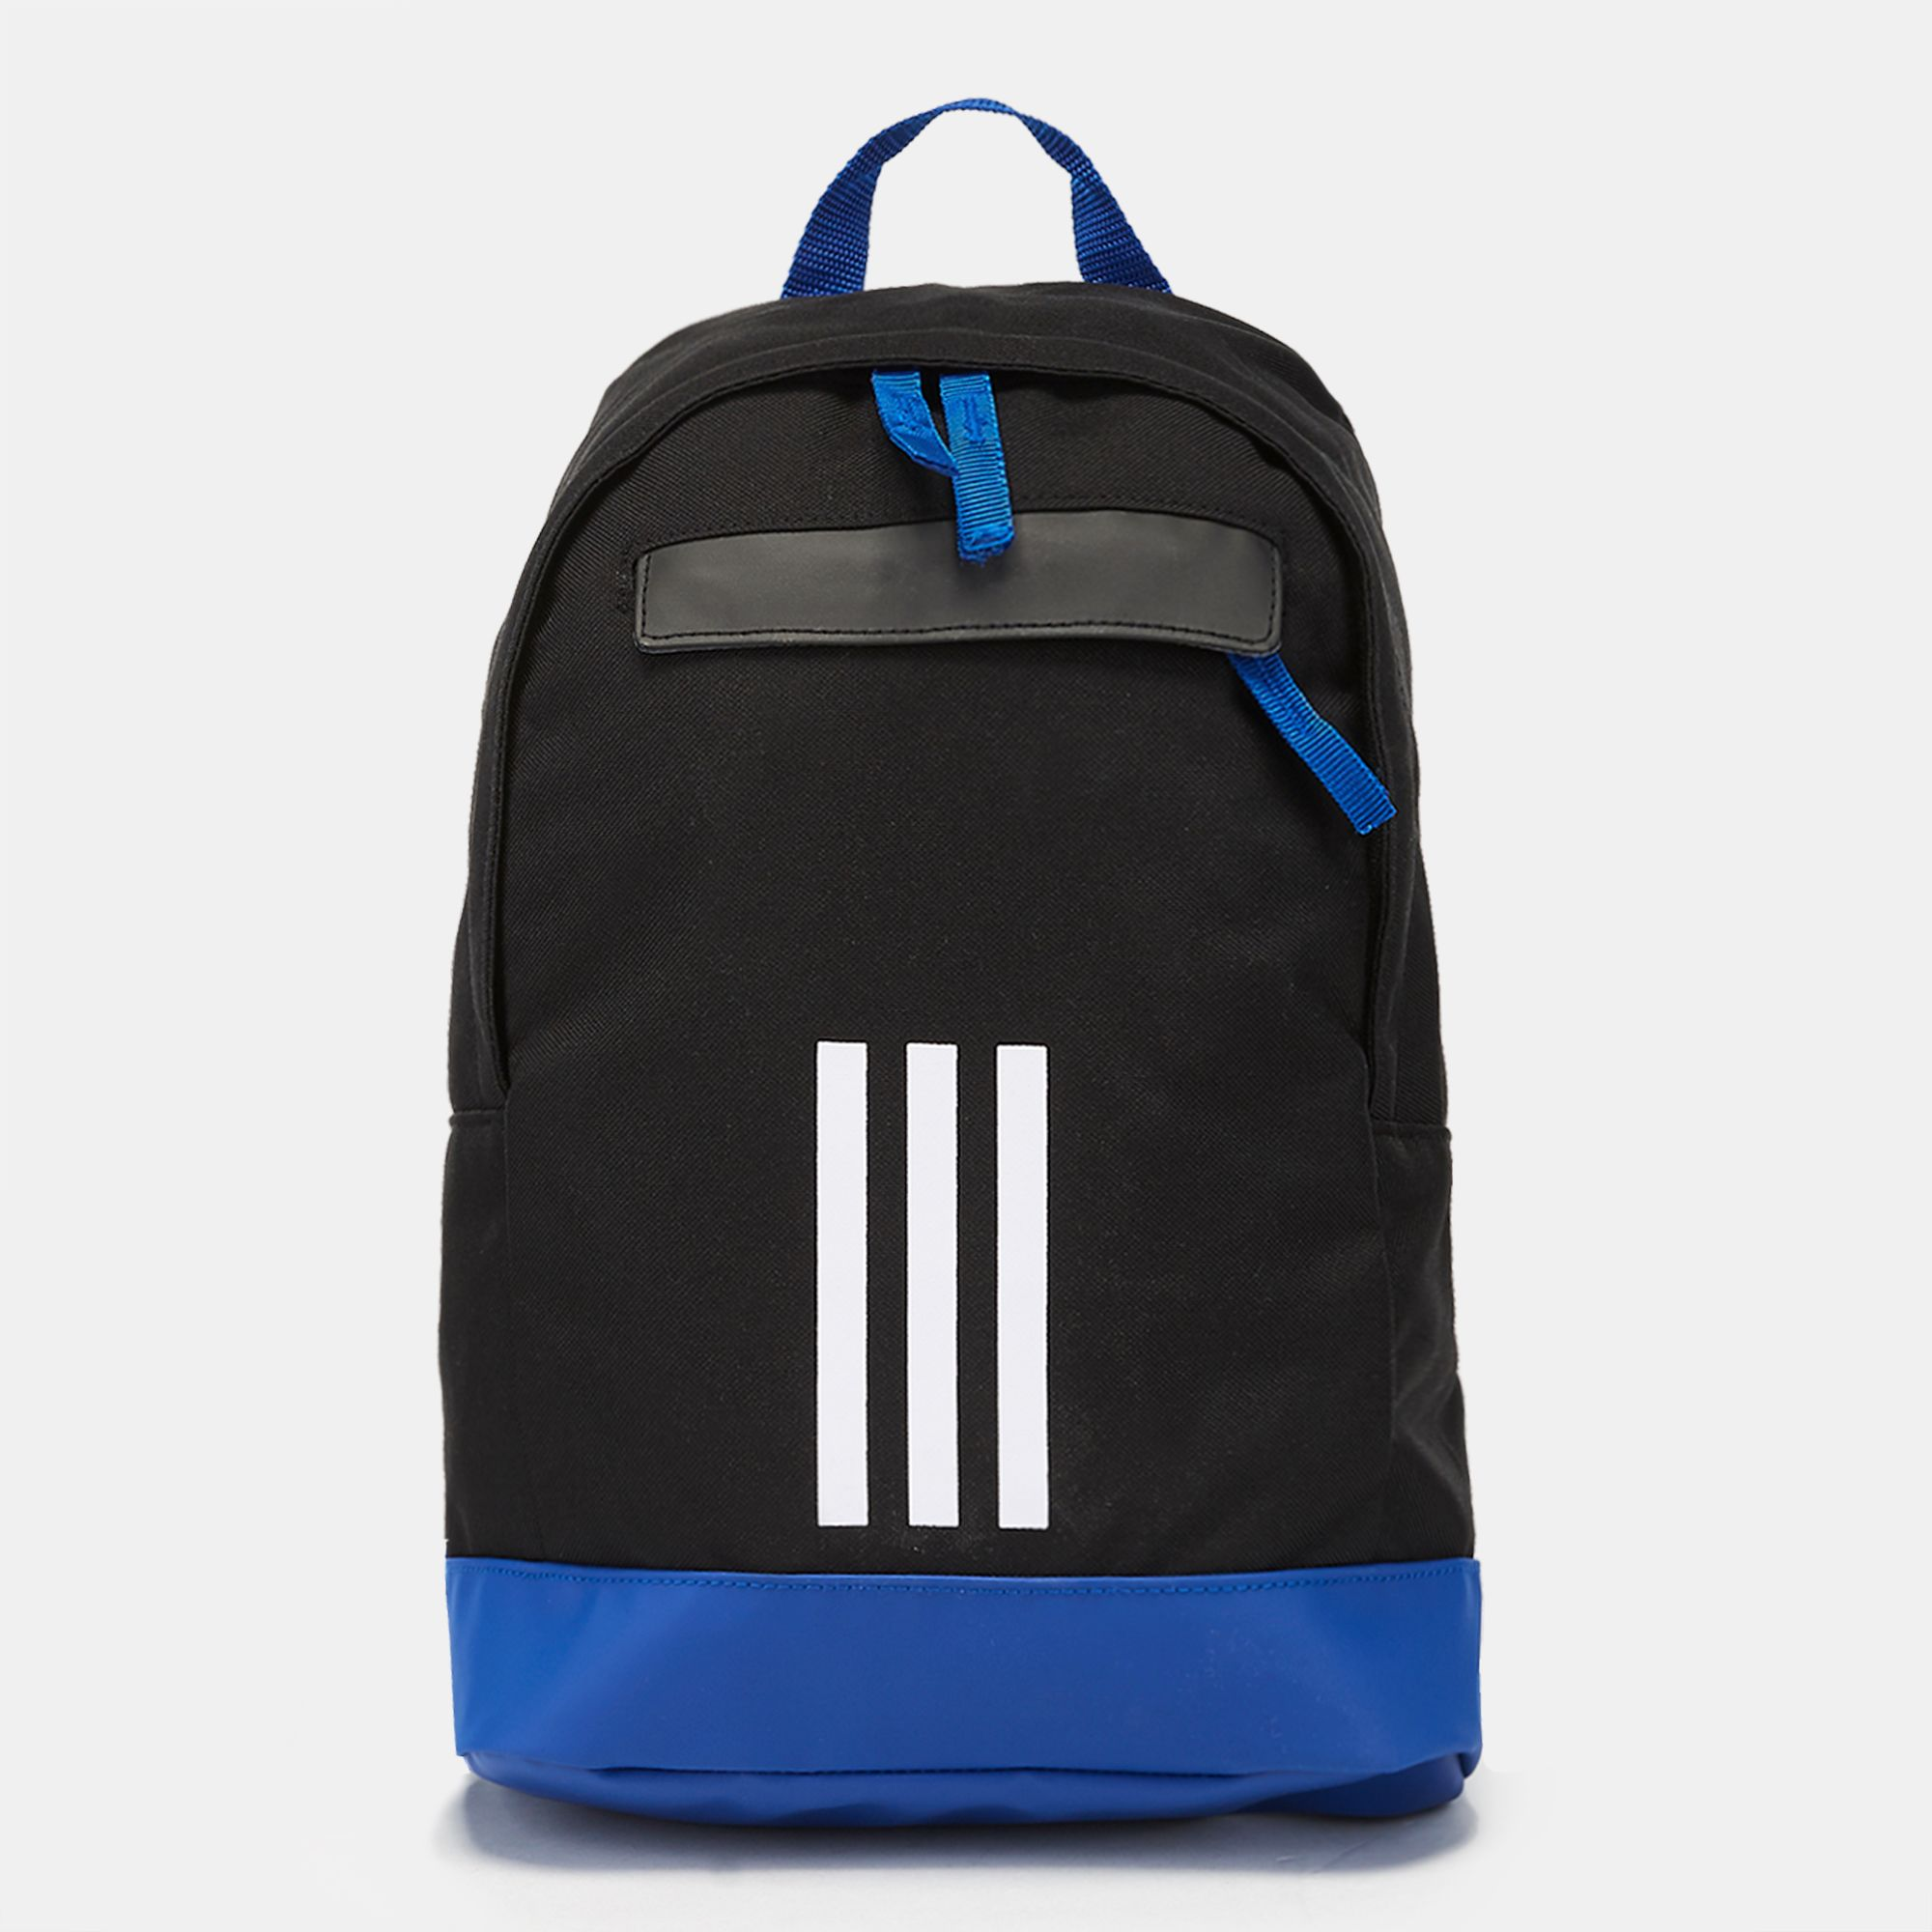 low priced 3fd63 87902 adidas Kids  Classic 3-Stripes XS Backpack - Black